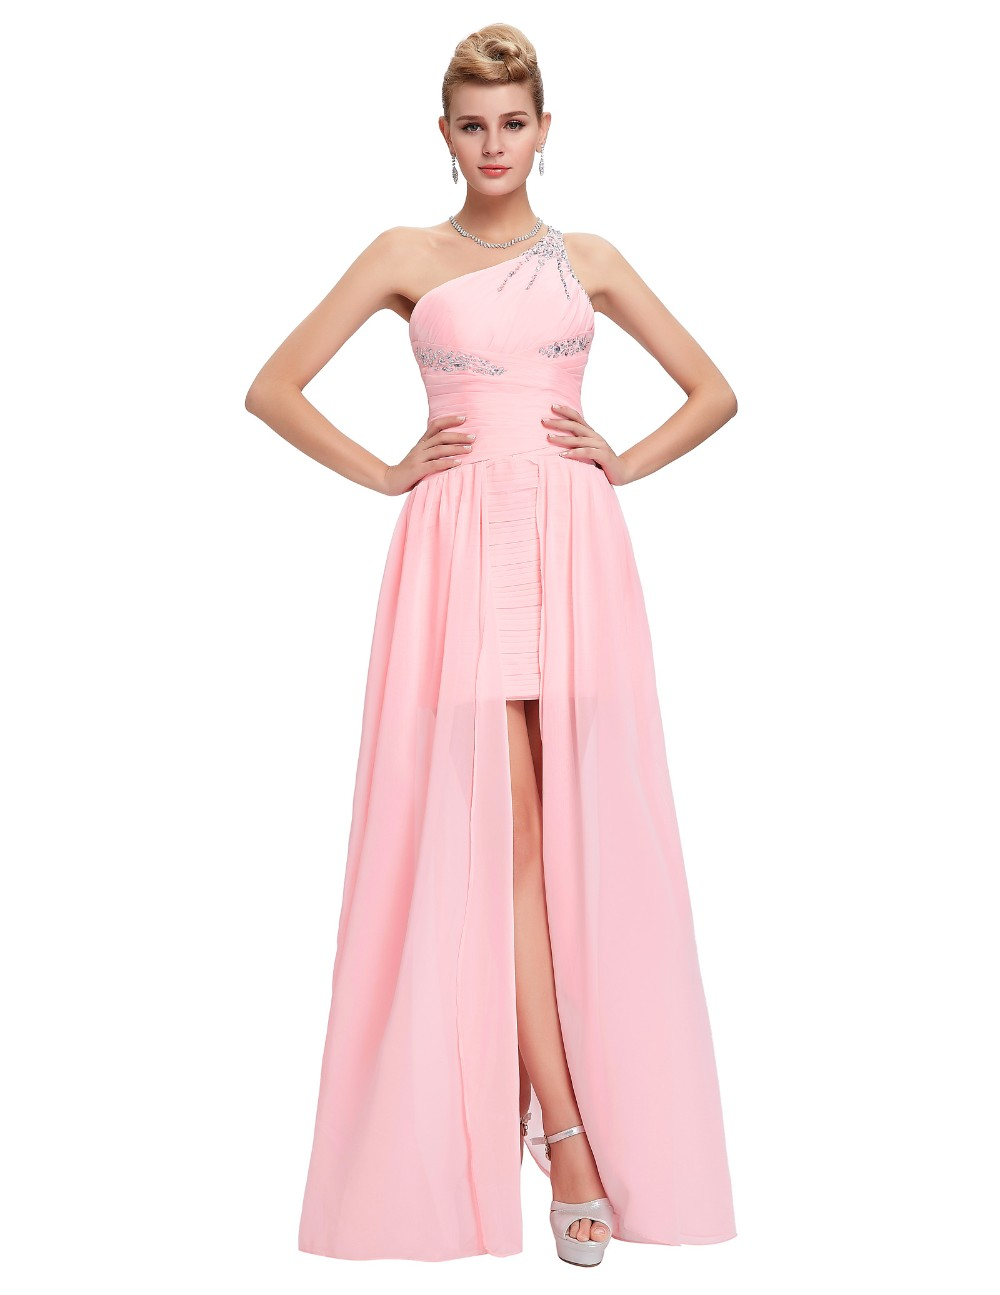 Light Pink Bridesmaid Dresses Grace Karin Beaded Chiffon One Shoulder Formal Gowns Short Front Long Back Wedding Party Dresses 6